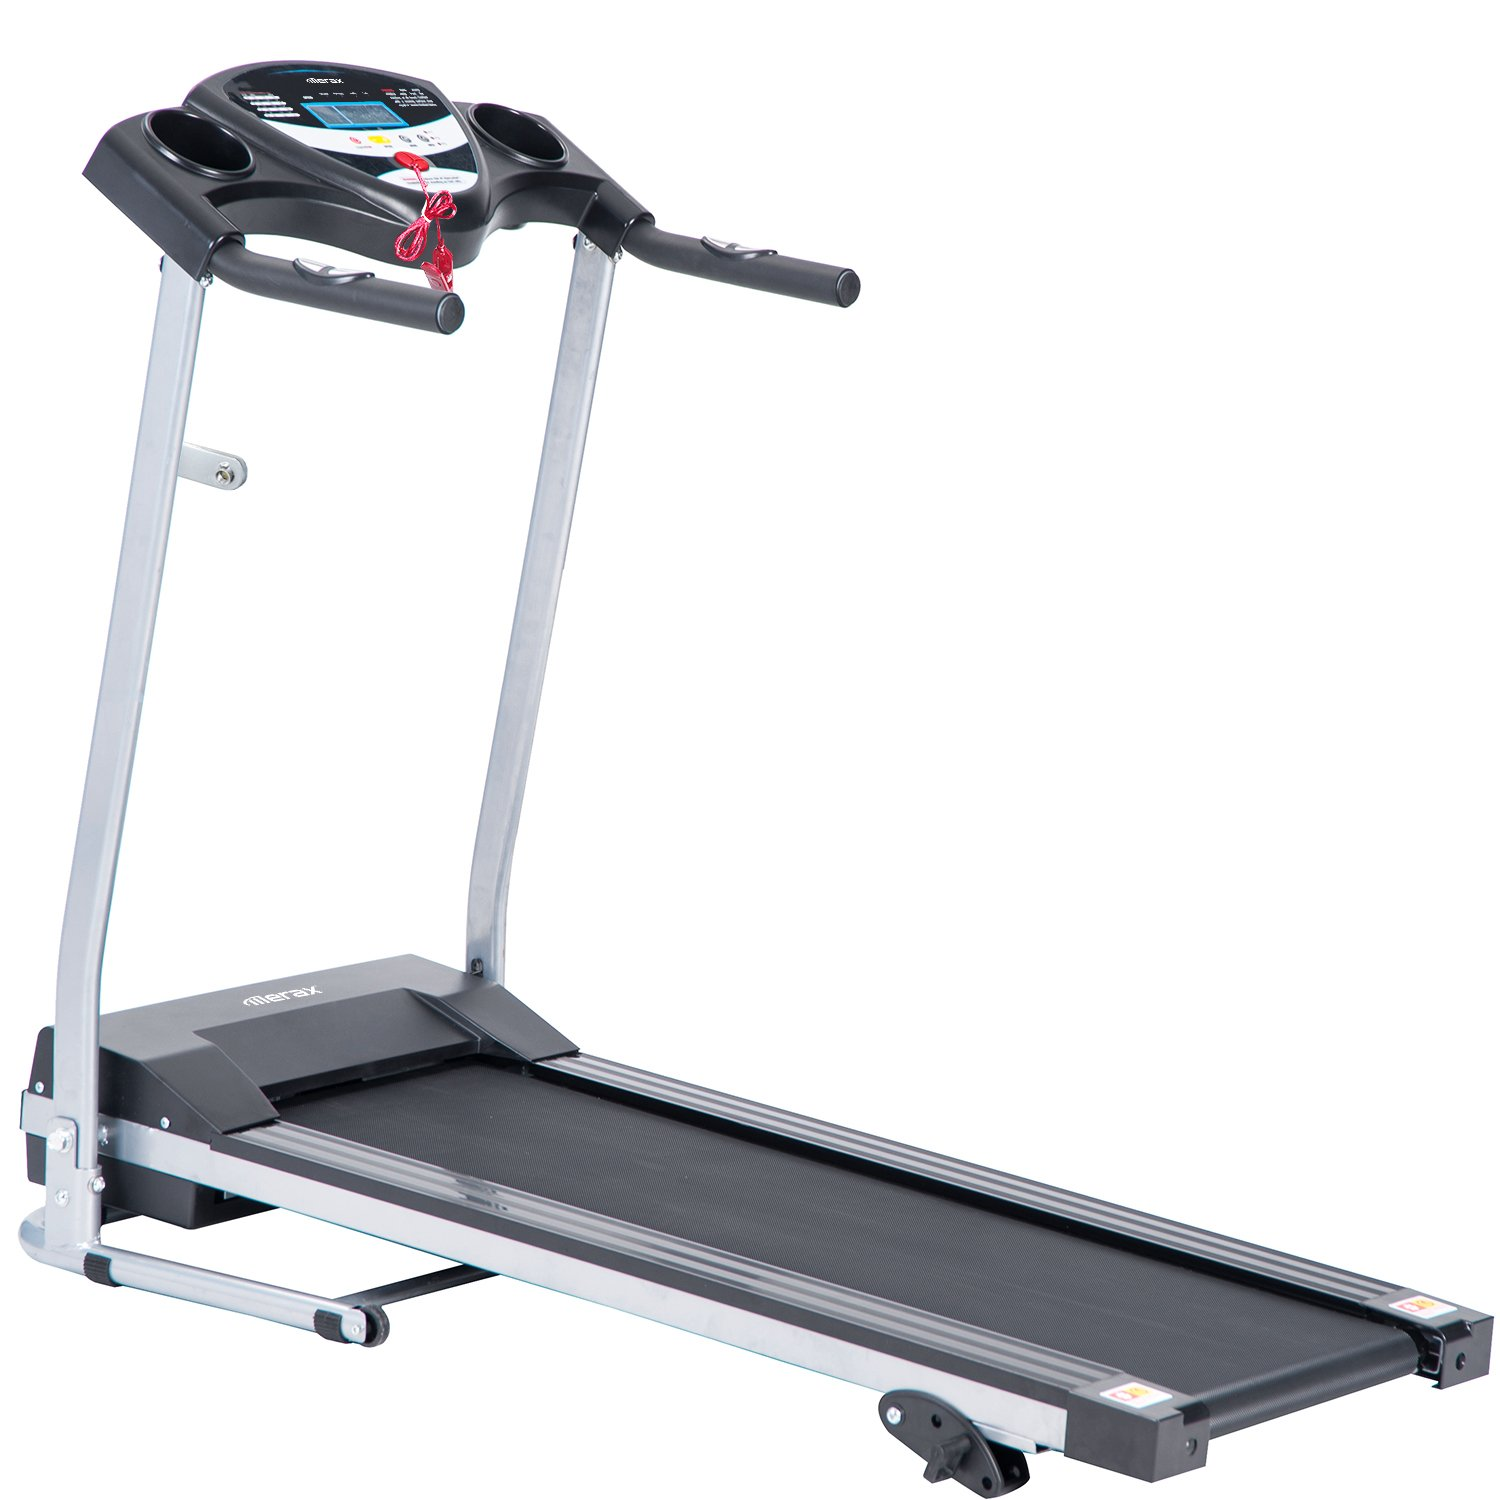 Merax Electric Folding Treadmill Motorized Running Machine JK1605 Easy Assembly (Black)